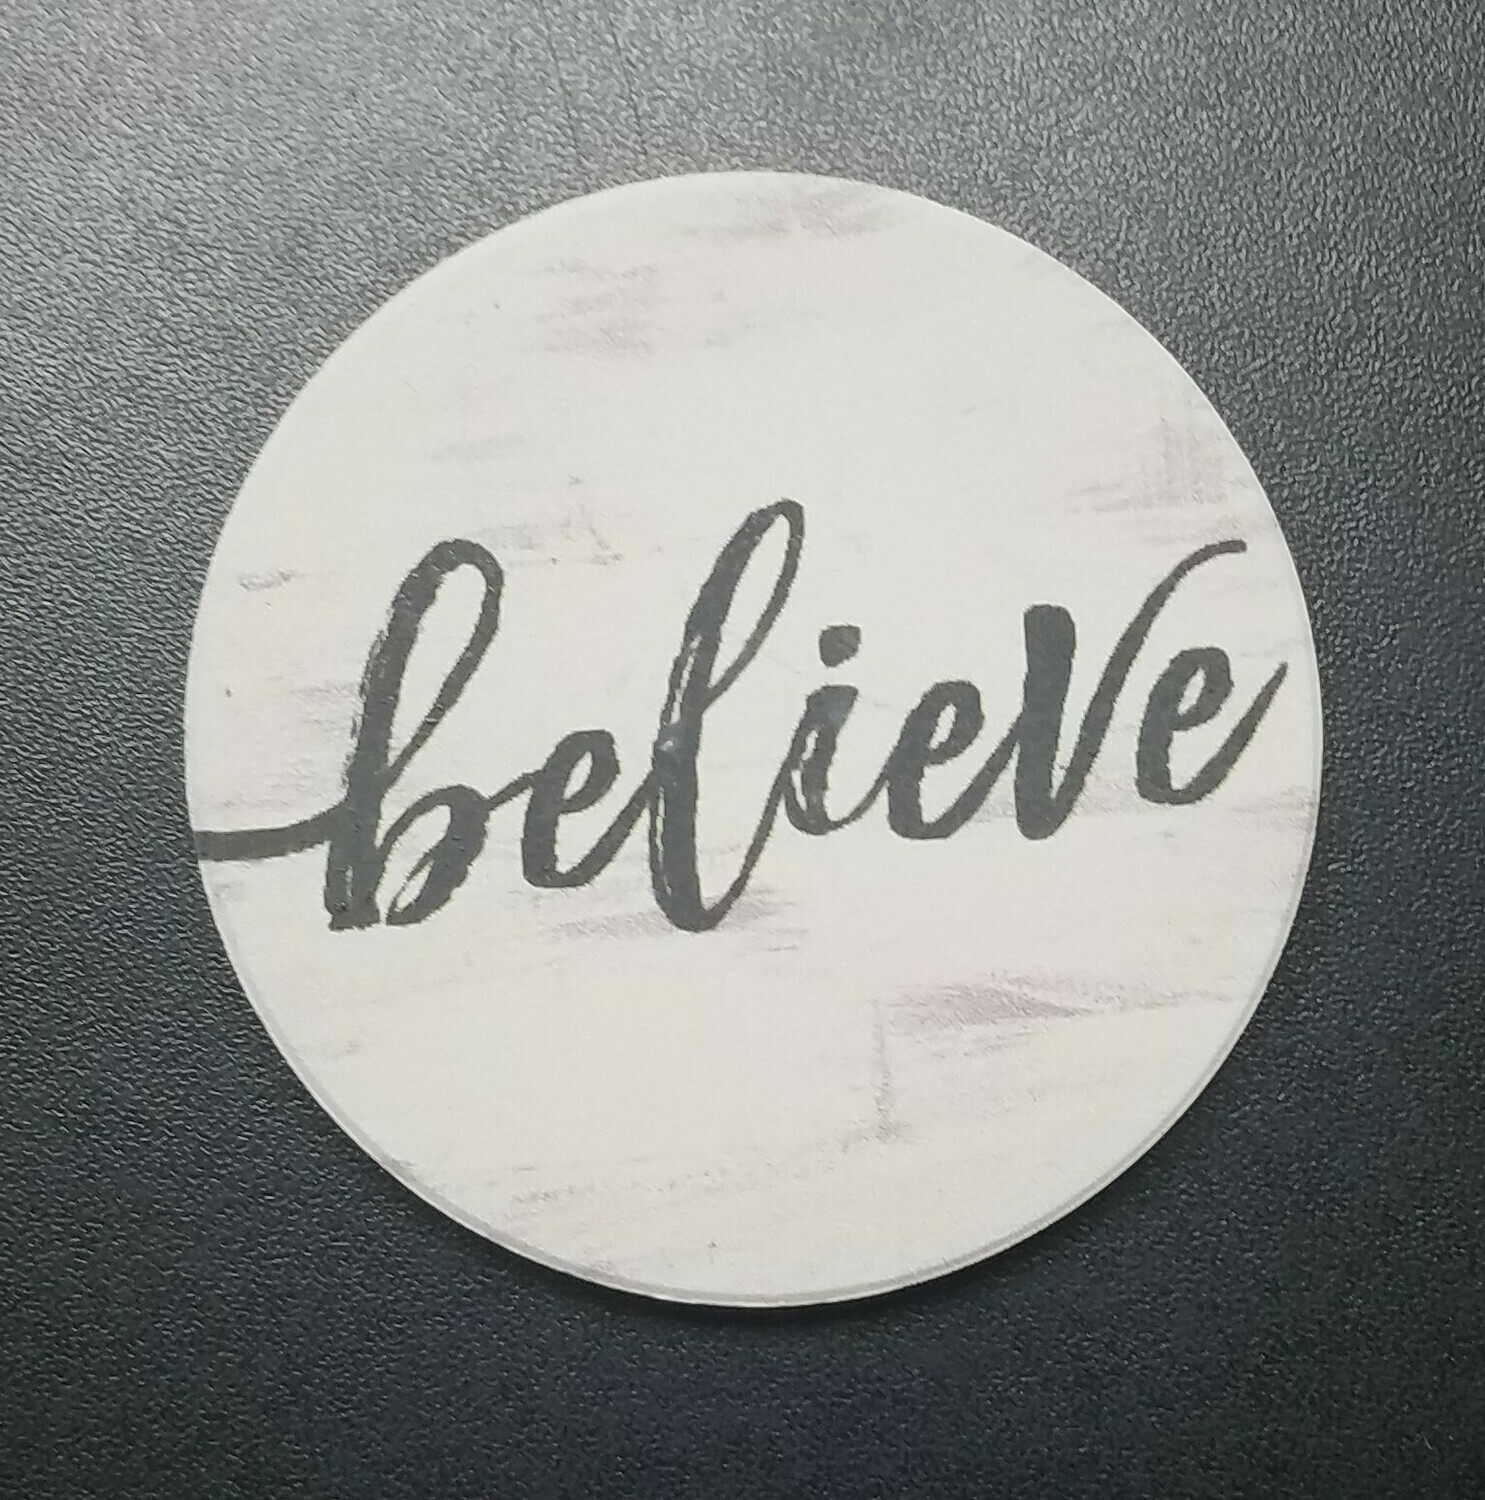 Believe Car Coaster